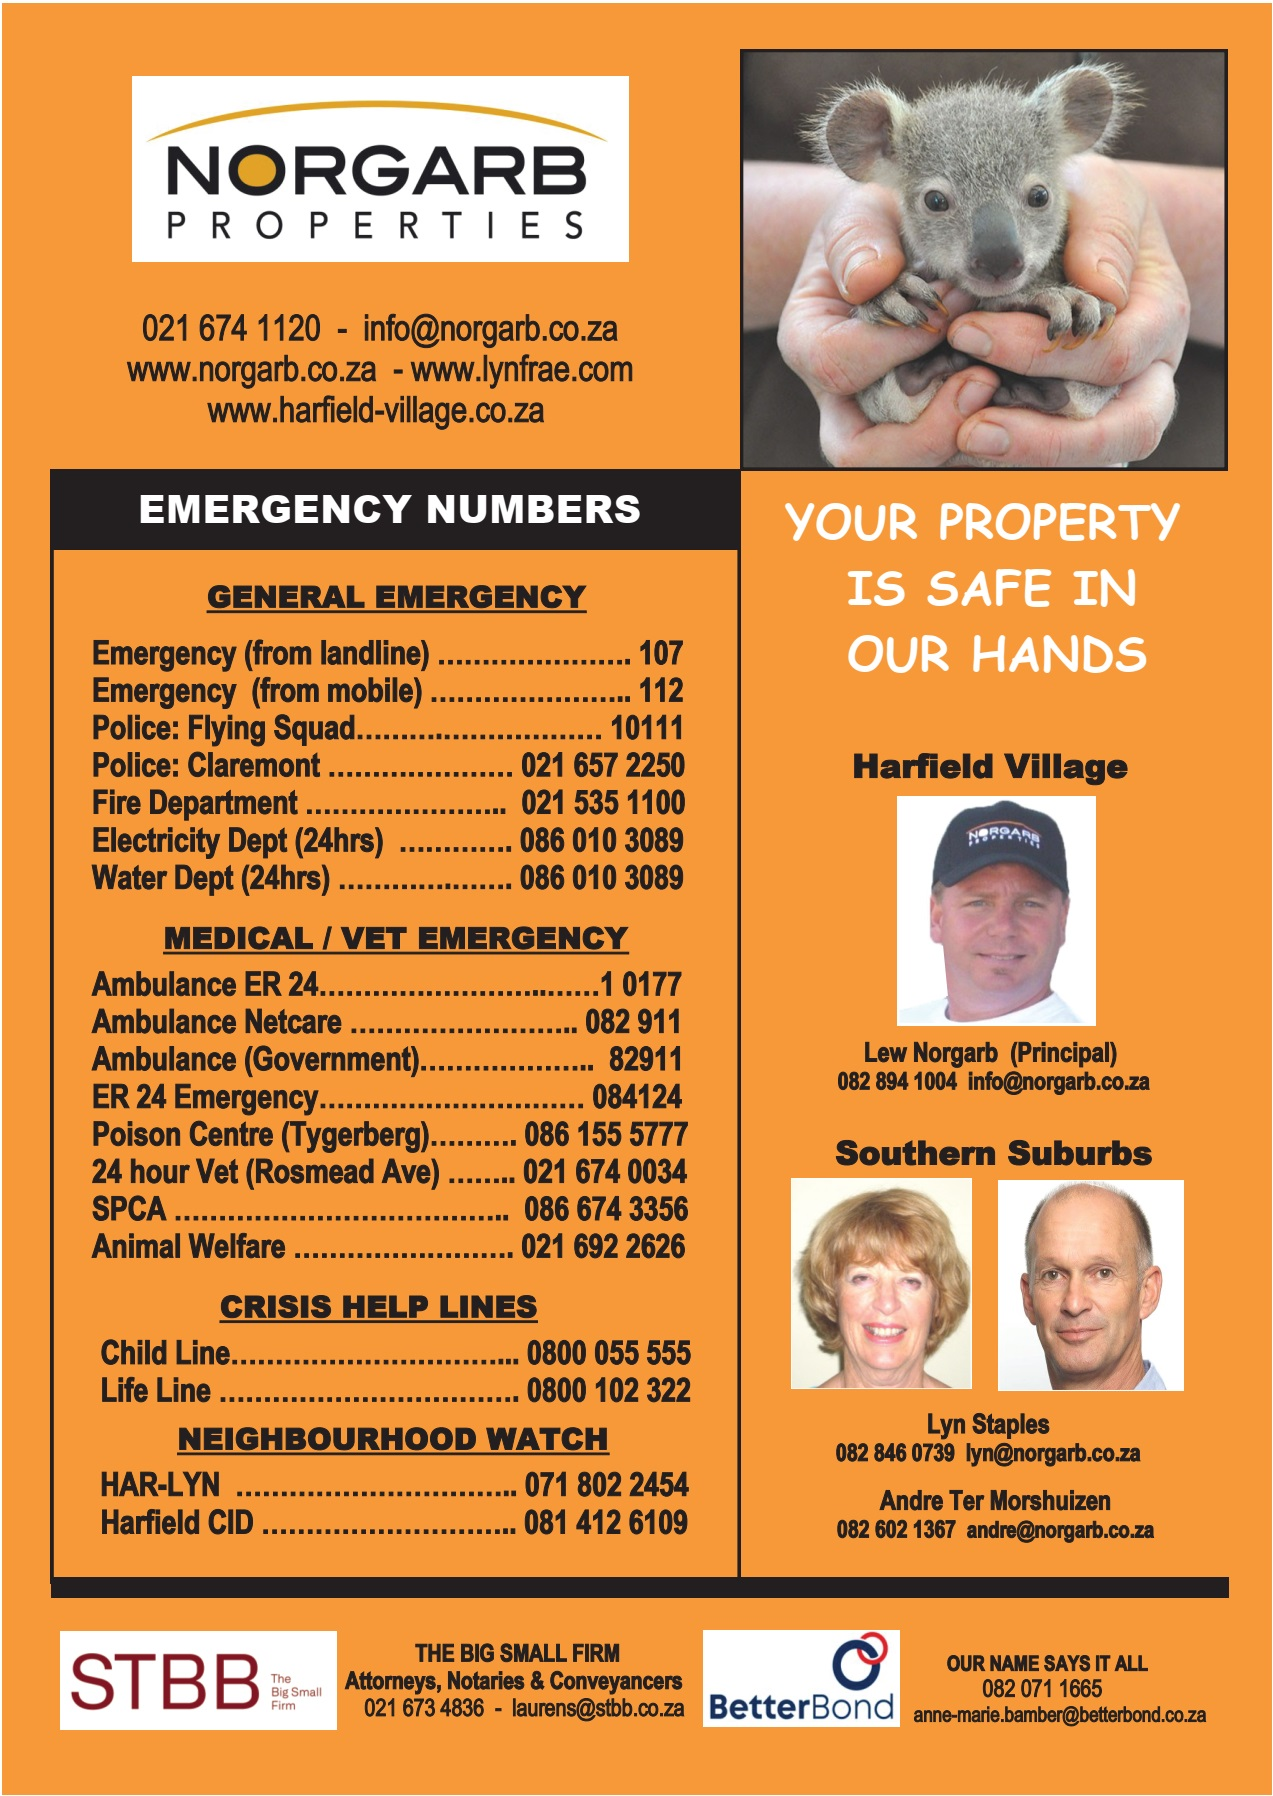 Harfield Village Emergency Numbers